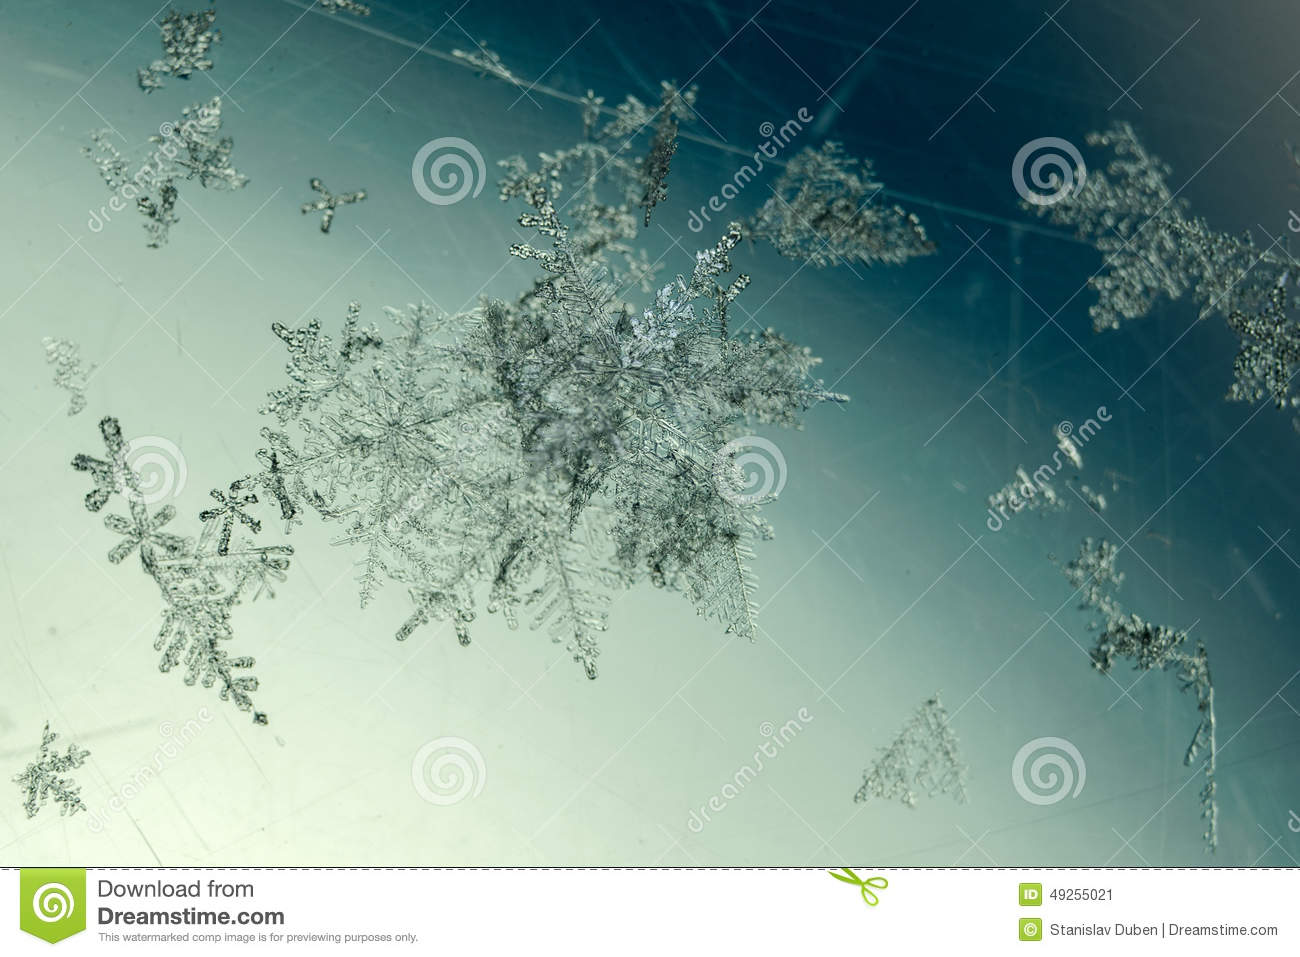 Group of snowflakes detail